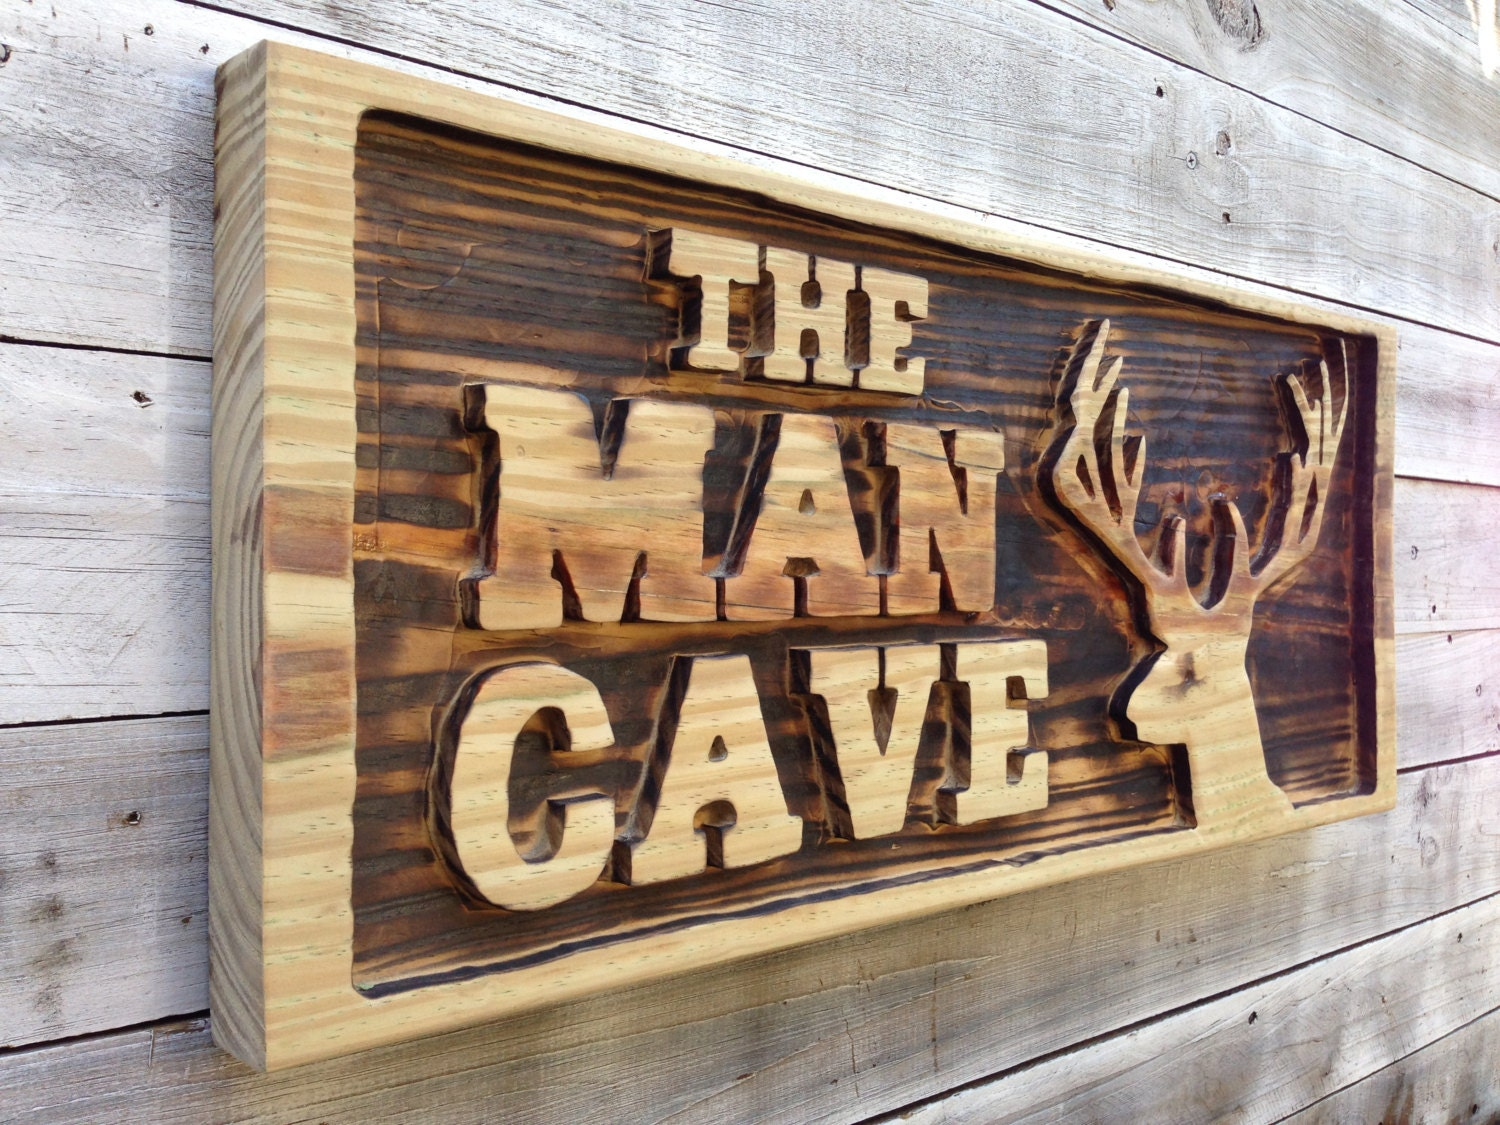 Man Cave Wall Decor Carved Man Cave with Deer Head Wooden ...